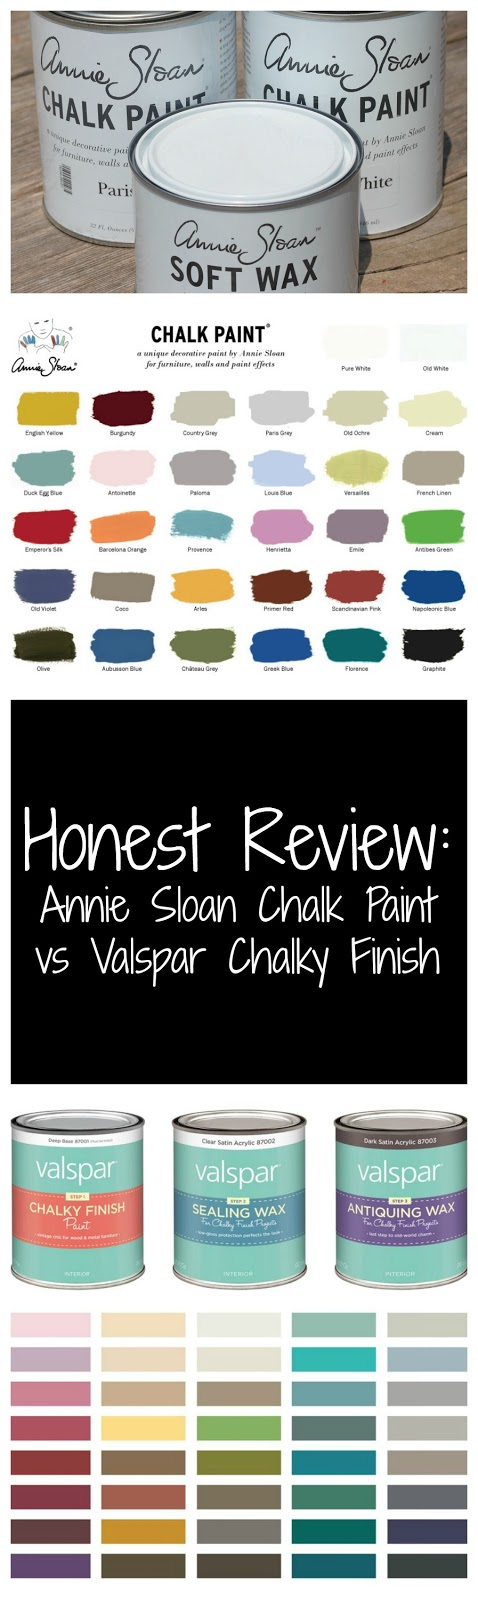 also honest review  valspar chalky finish vs annie sloan chalk paint rh lovesthefind